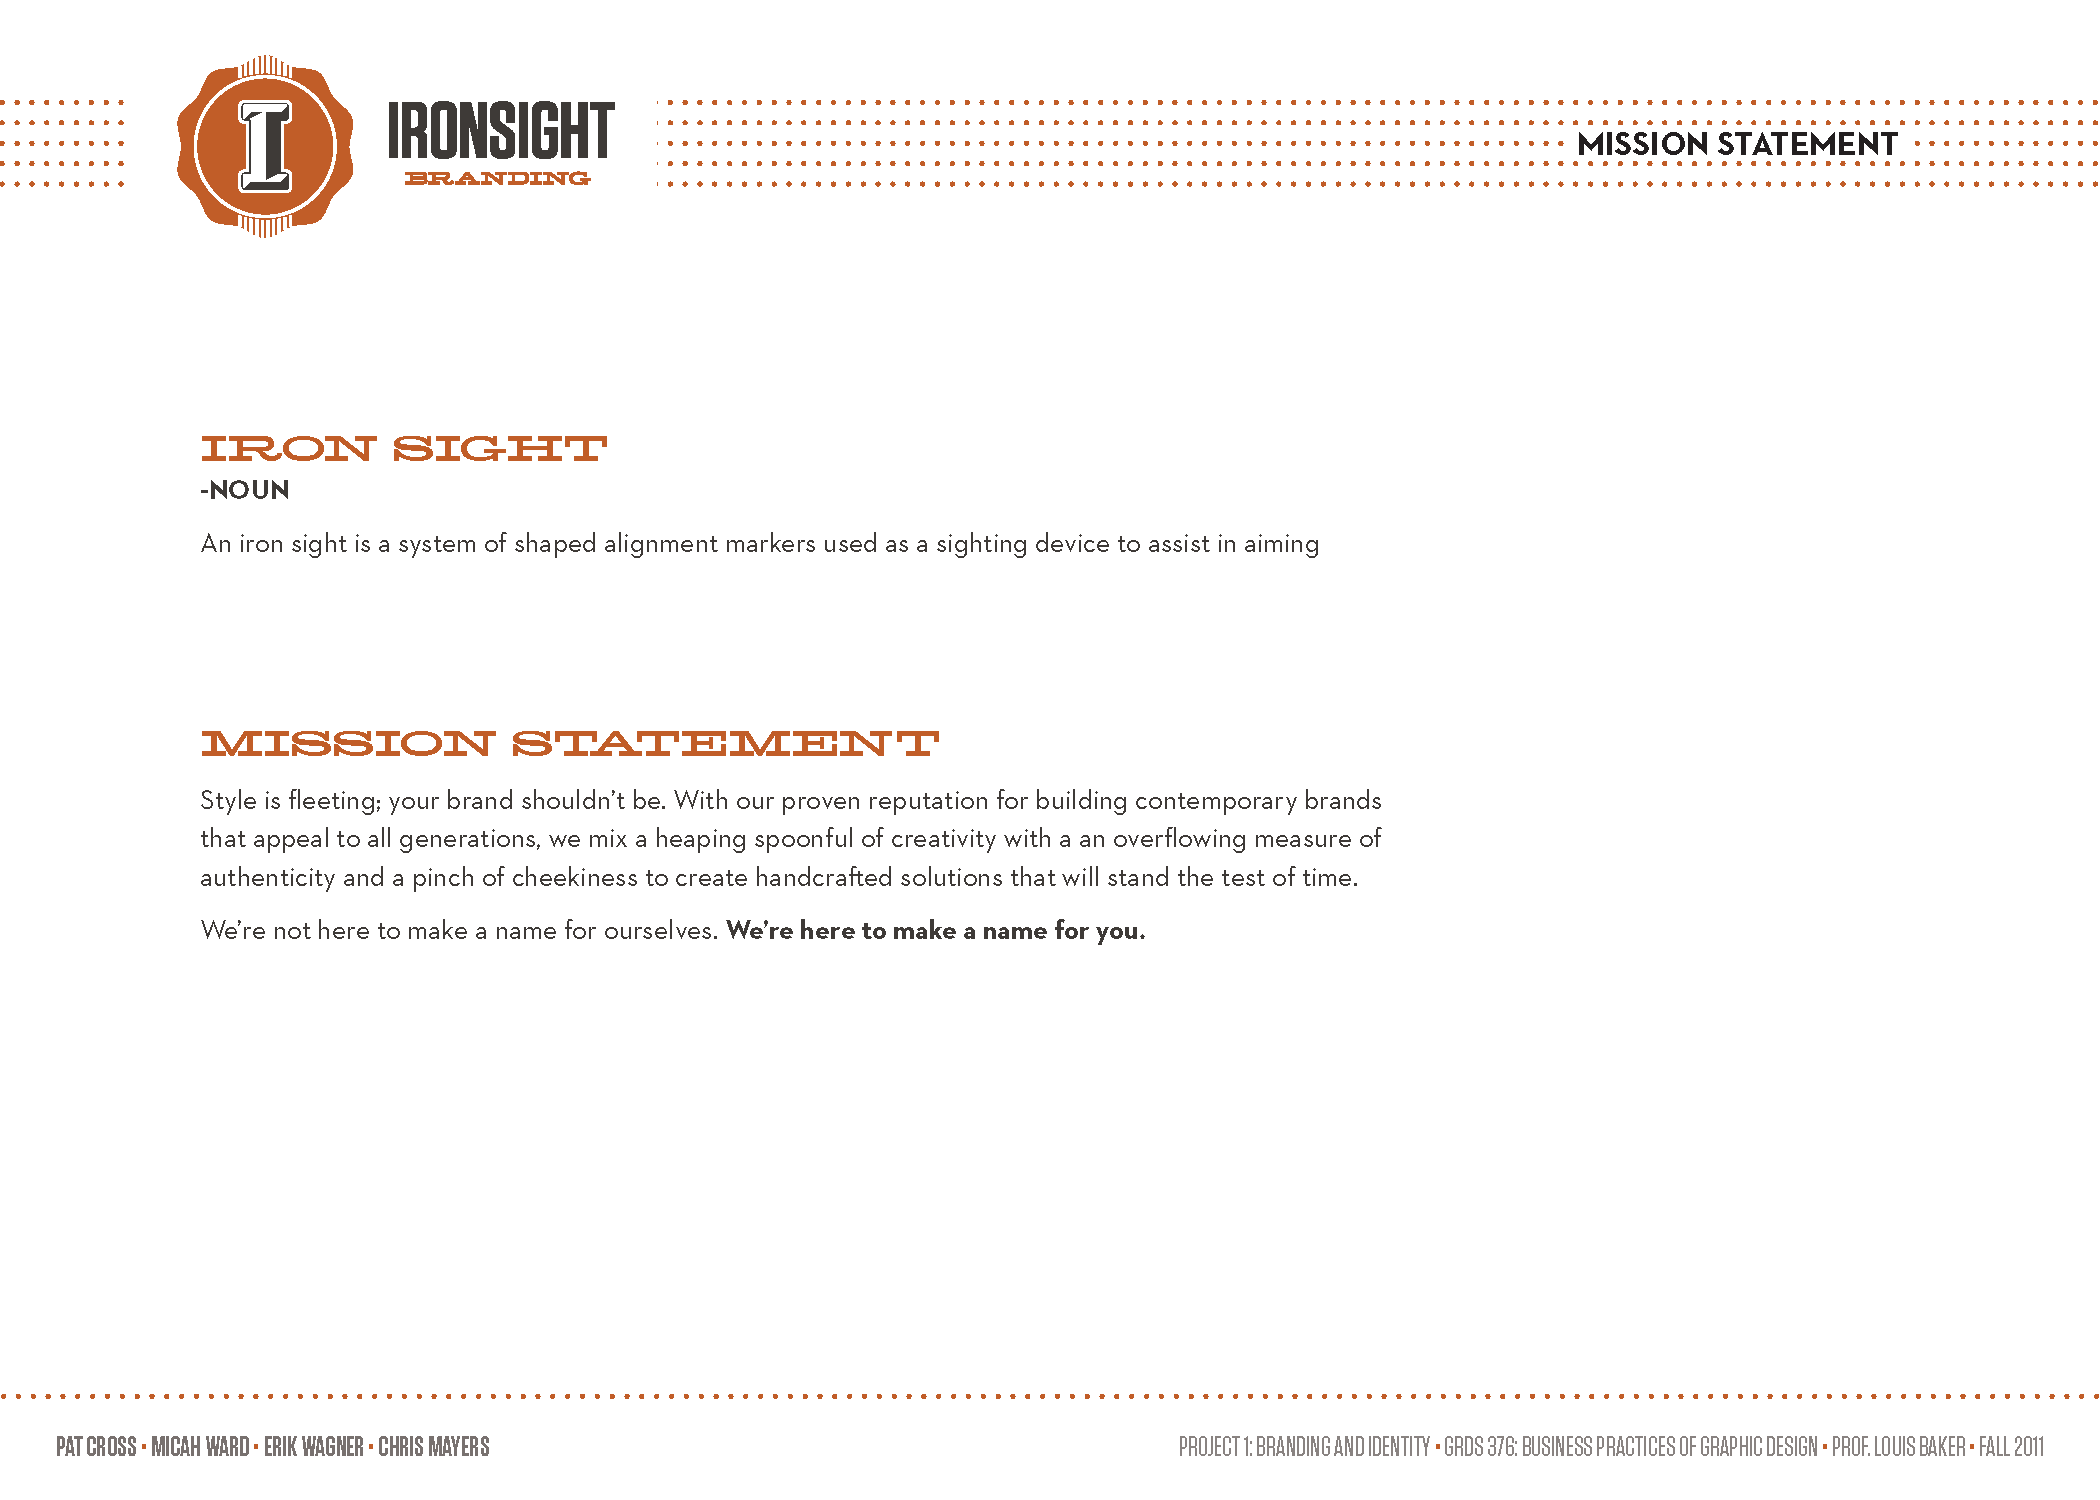 ironsight_branding copy_Page_02.png